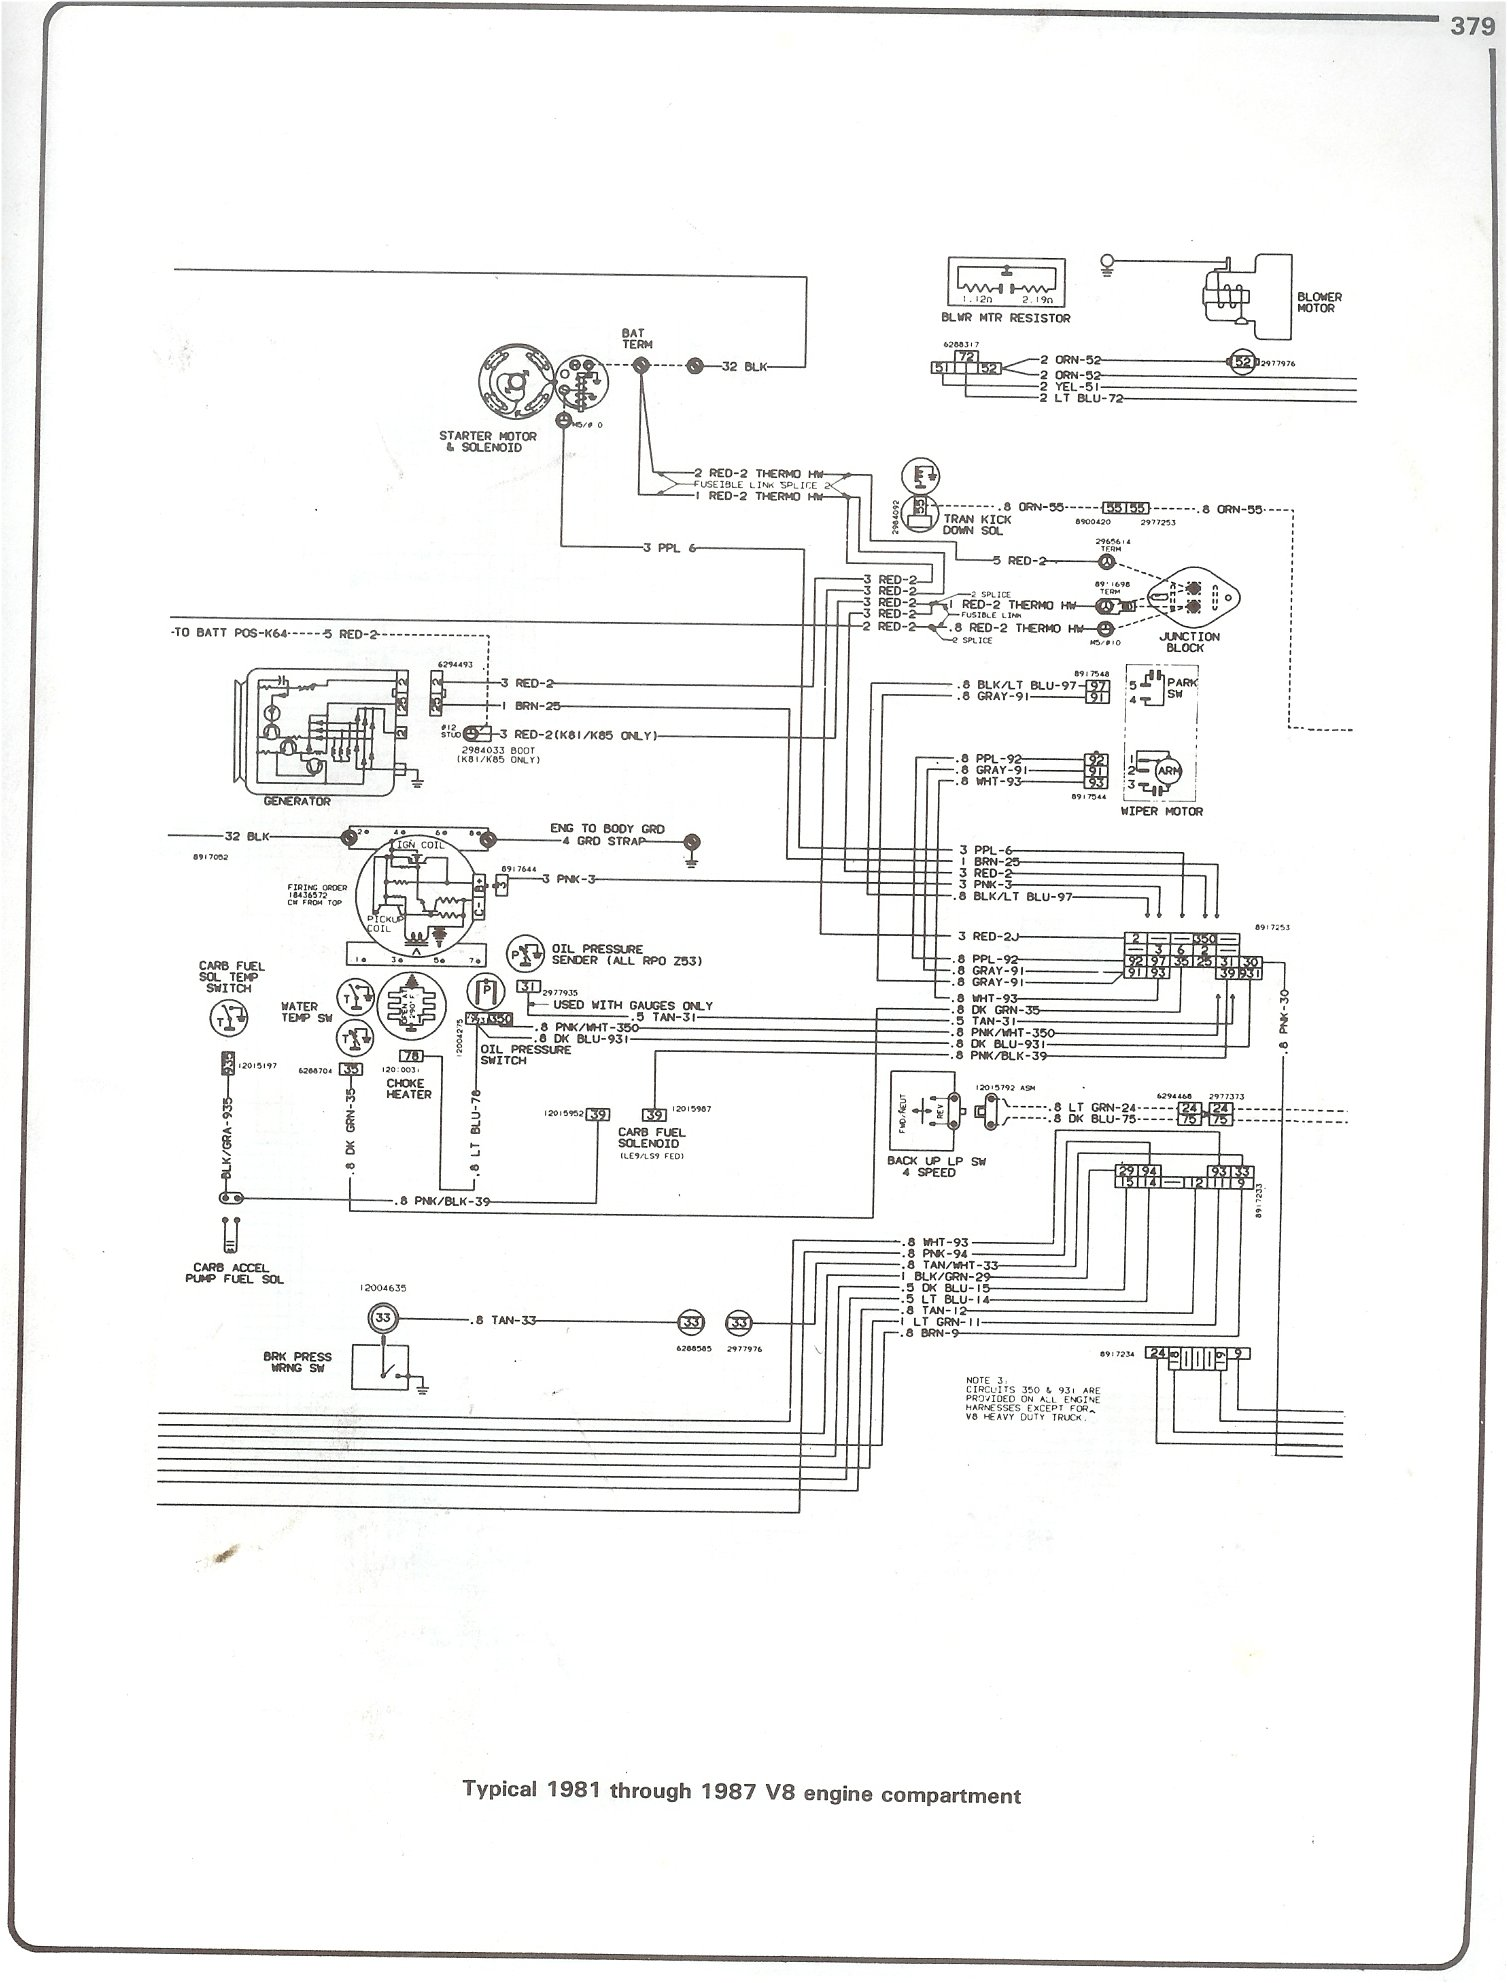 hight resolution of 1995 audi cabriolet fuse box diagram wiring library 2002 audi a4 fuse box location 1995 audi cabriolet fuse box diagram